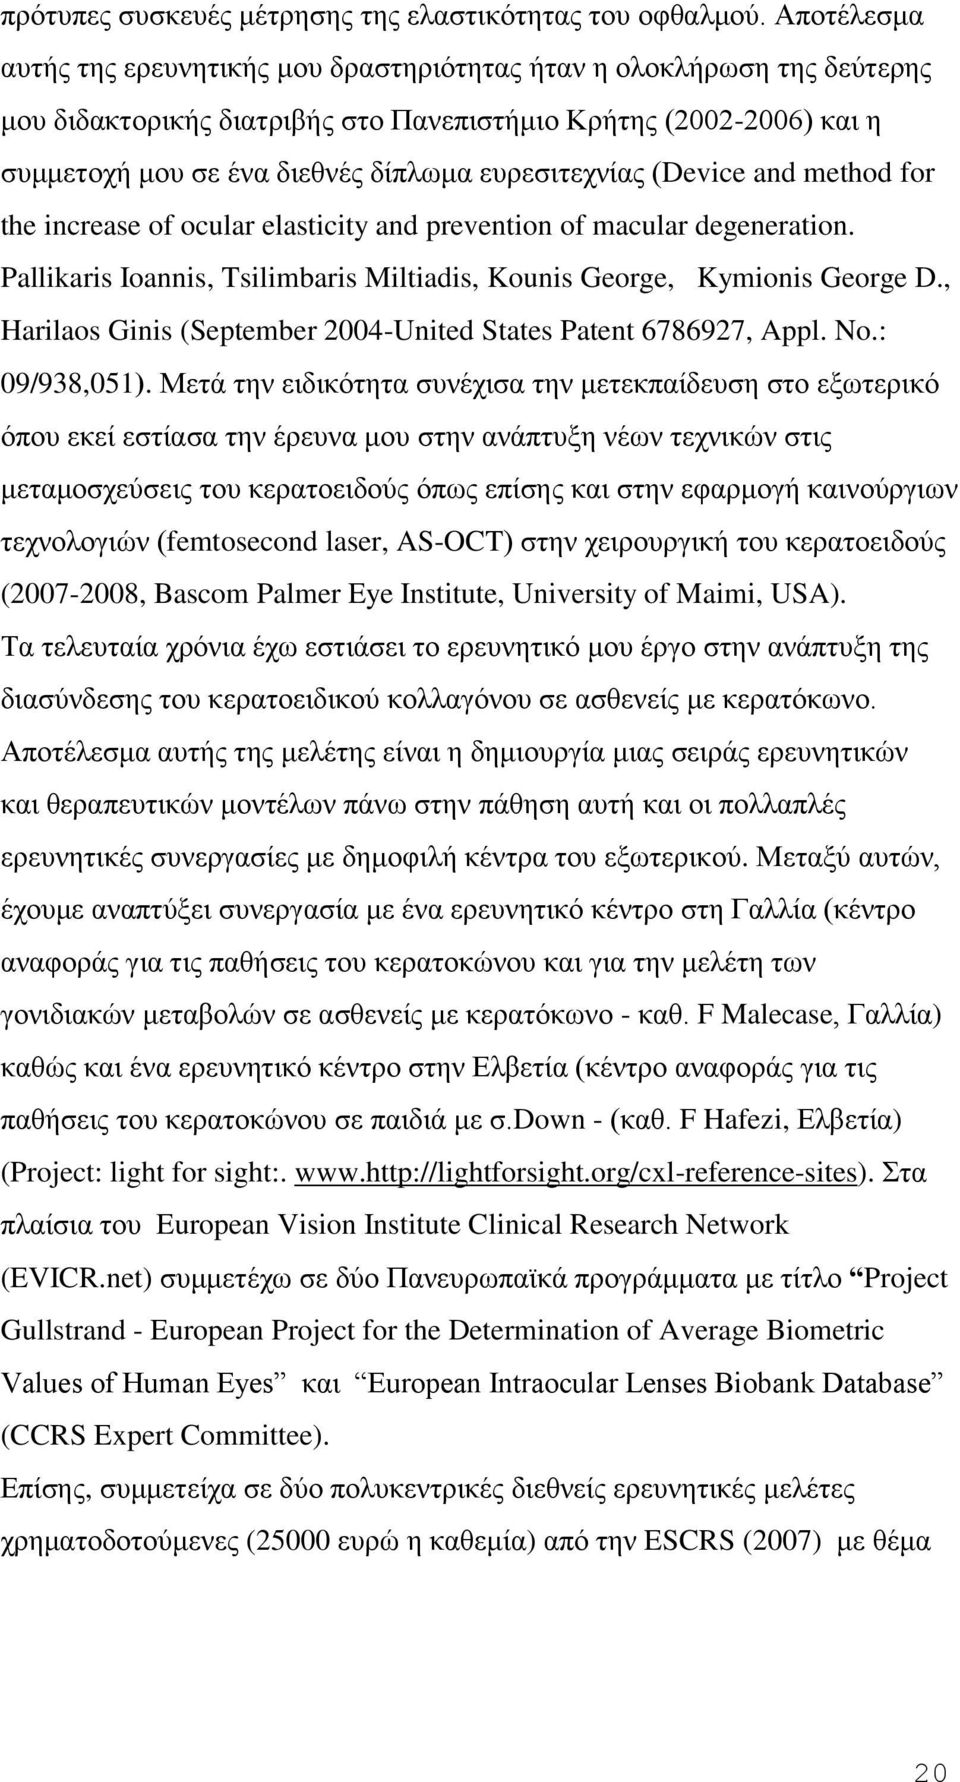 ευρεσιτεχνίας (Device and method for the increase of ocular elasticity and prevention of macular degeneration. Pallikaris Ioannis, Tsilimbaris Miltiadis, Kounis George, Kymionis George D.